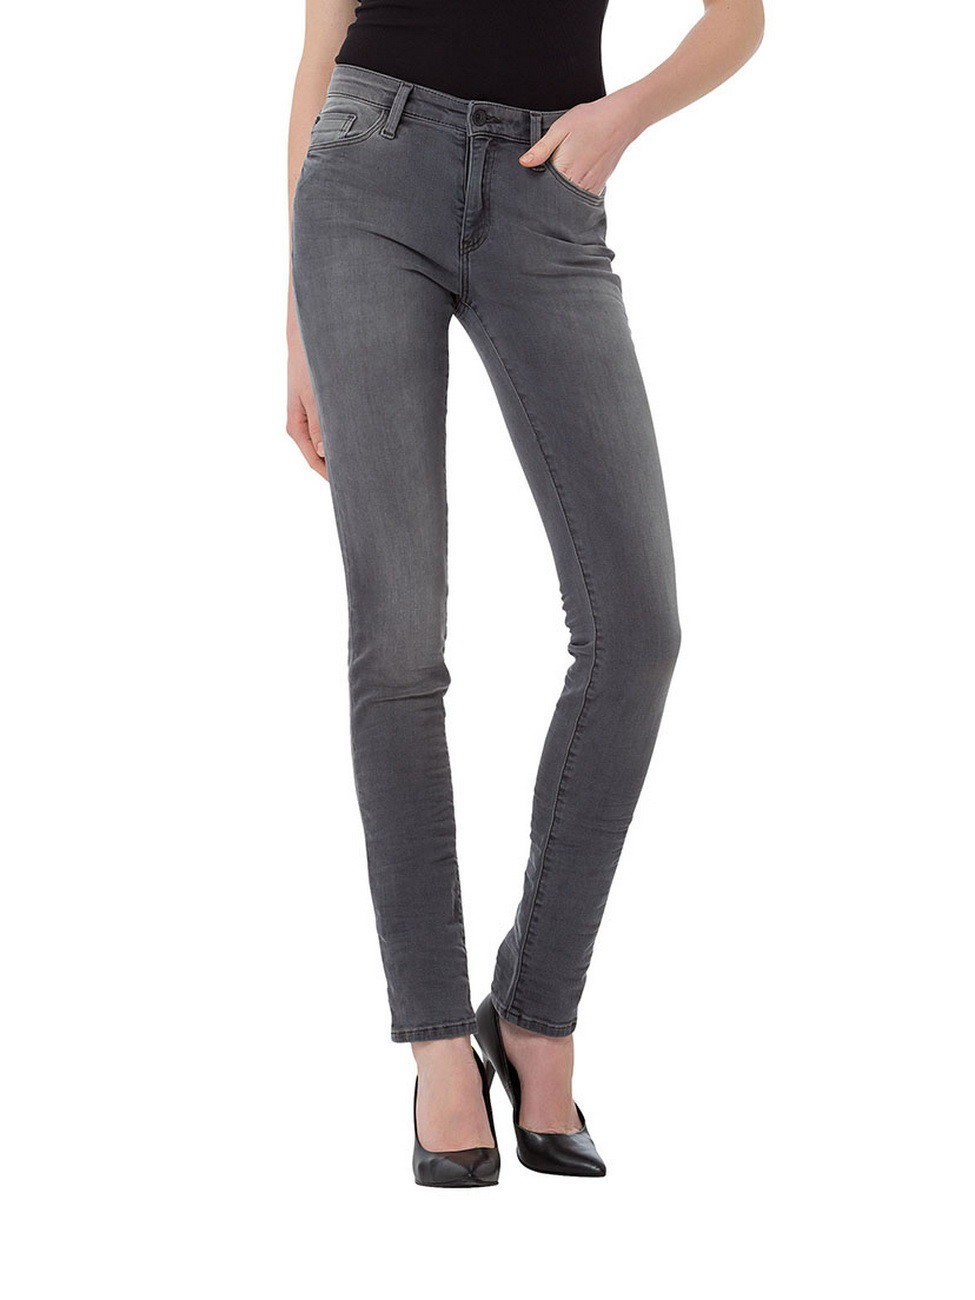 Cross jeans damen anya